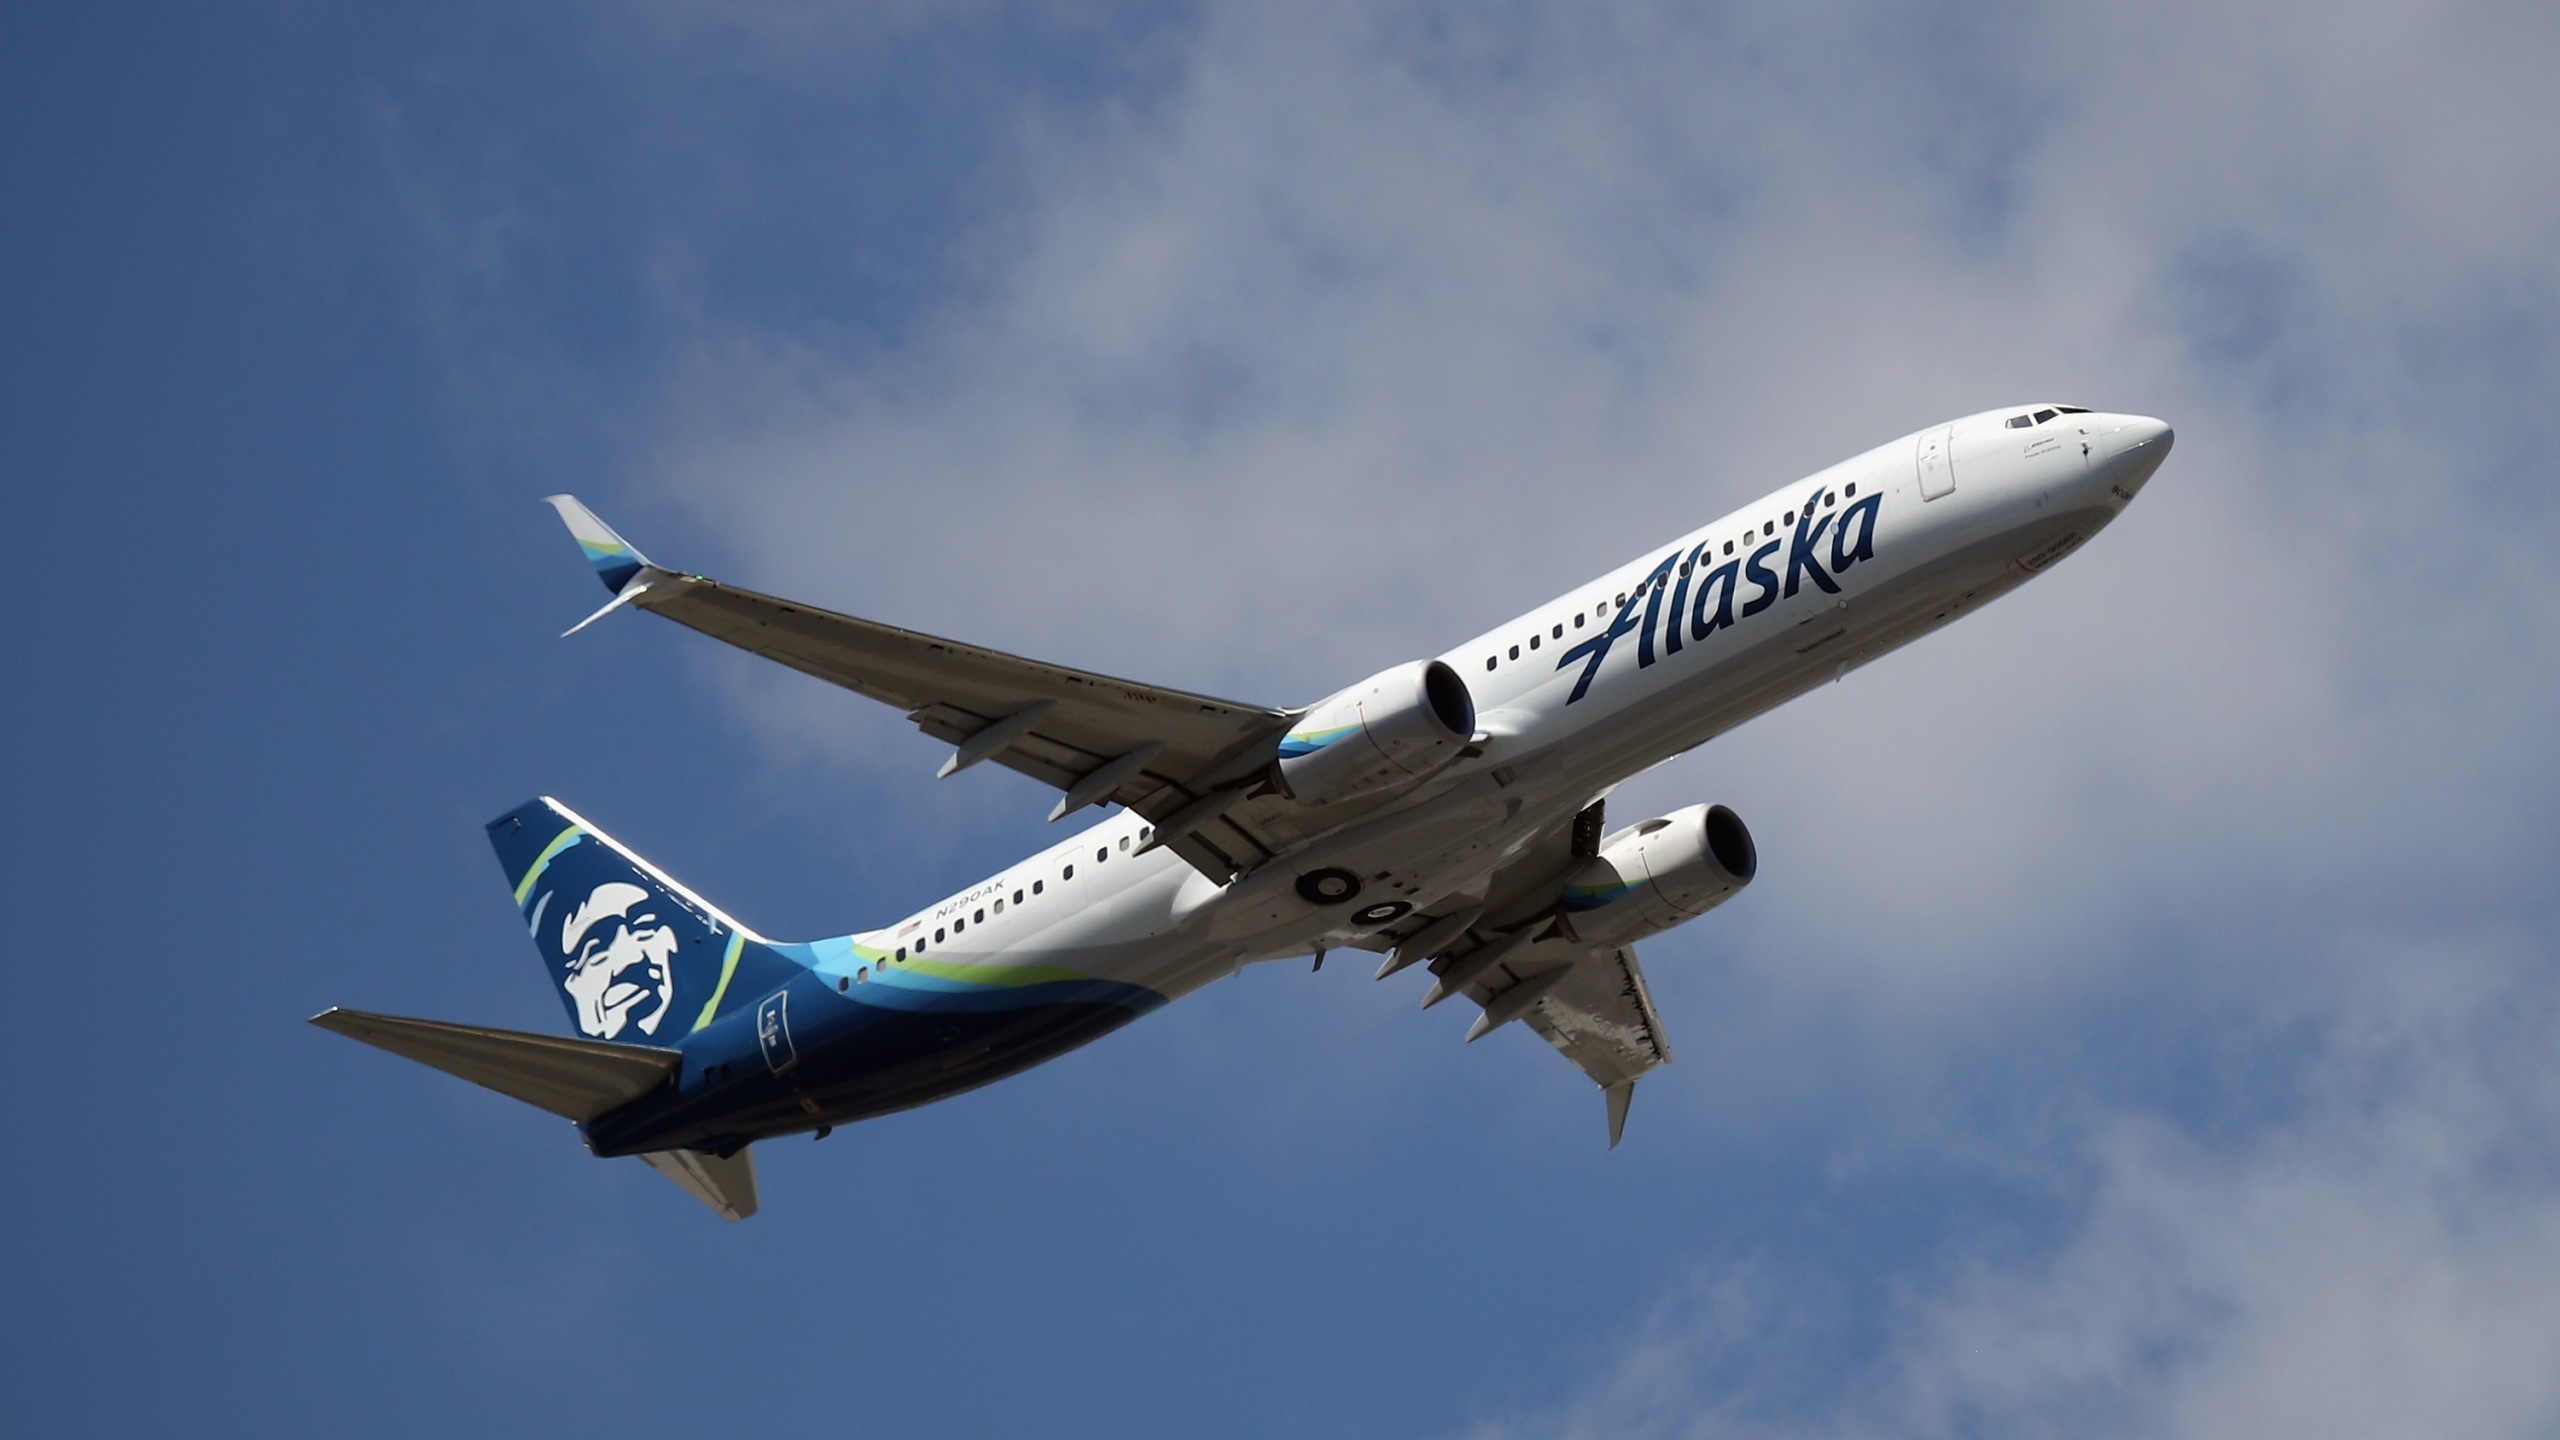 AN Alaska Airlines plane takes off from JFK Airport on Aug. 24, 2019. (Credit: Bruce Bennett/Getty Images)